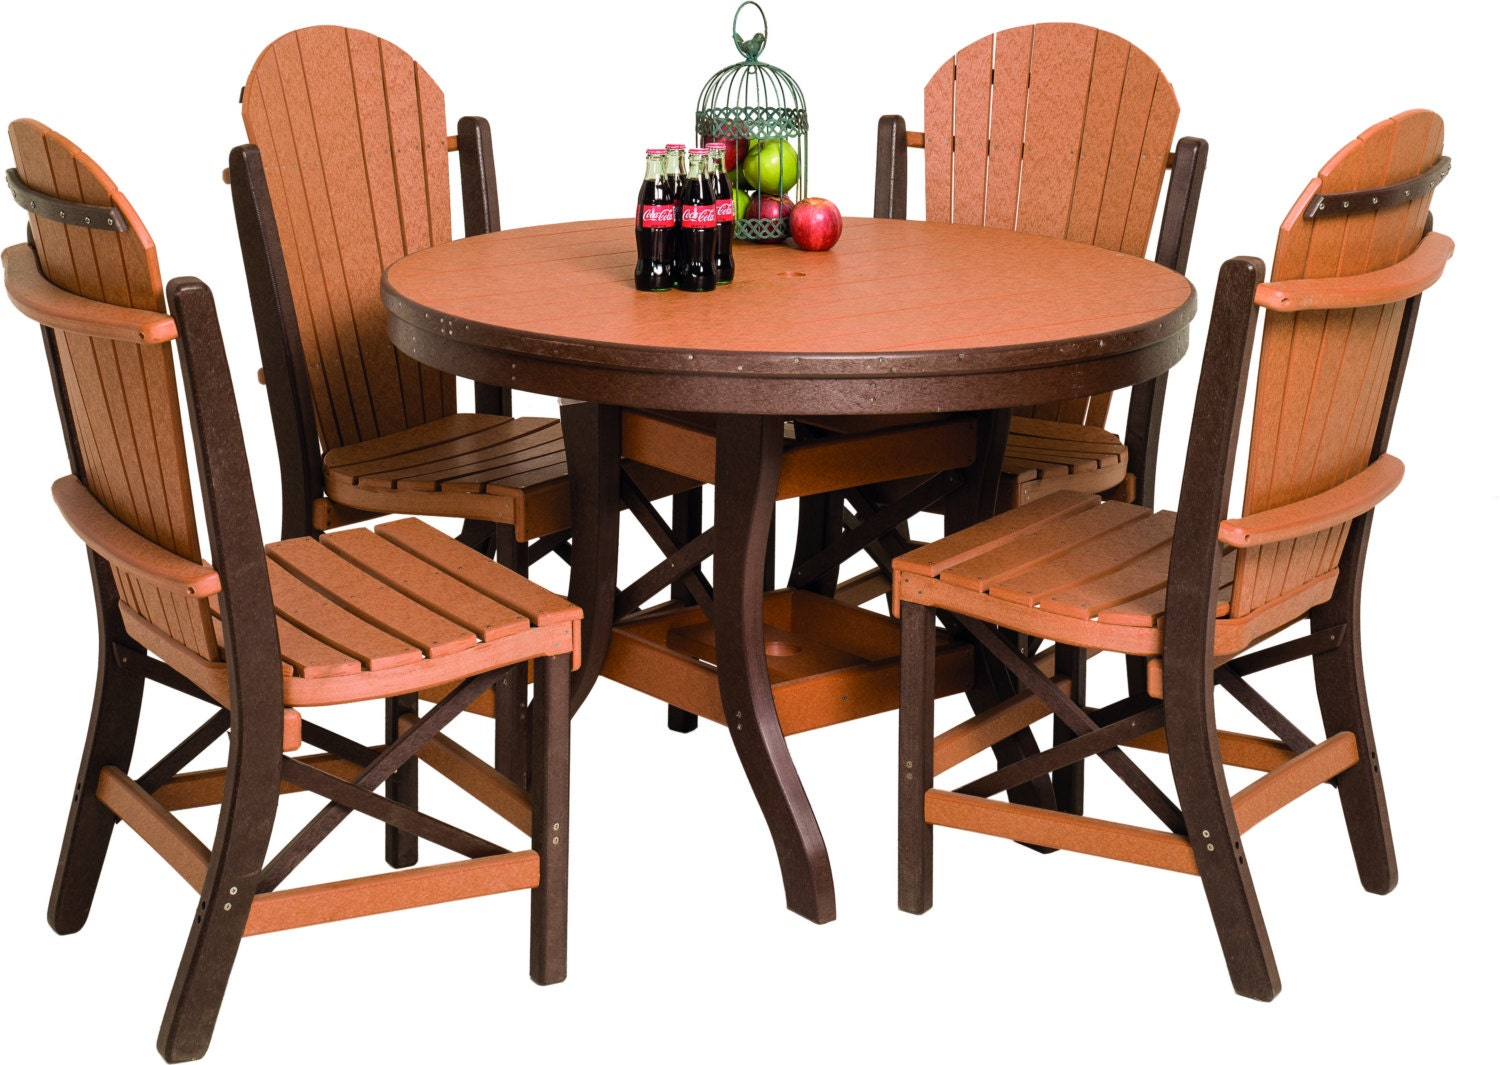 Recycled poly lumber 60 inch round outdoor dining table with 6 for 60 inch round dining table